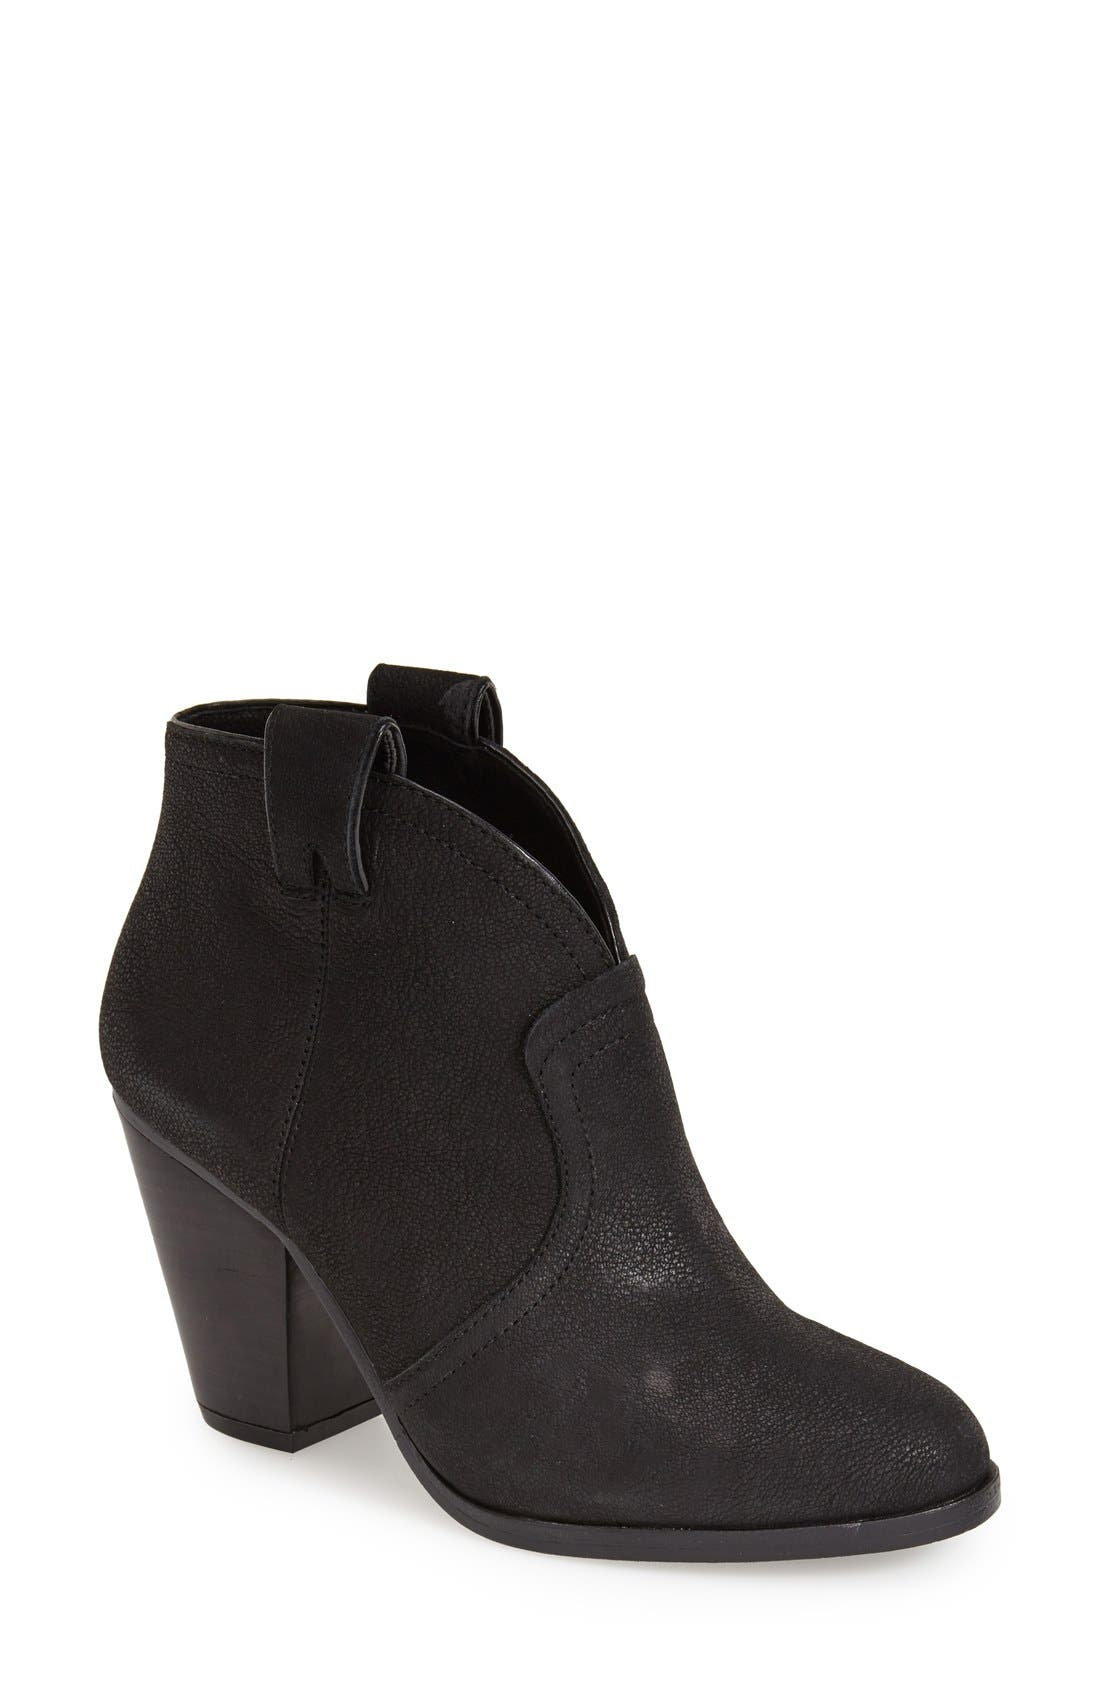 Alternate Image 1 Selected - Vince Camuto 'Hillsy' Almond Toe Ankle Bootie (Women)